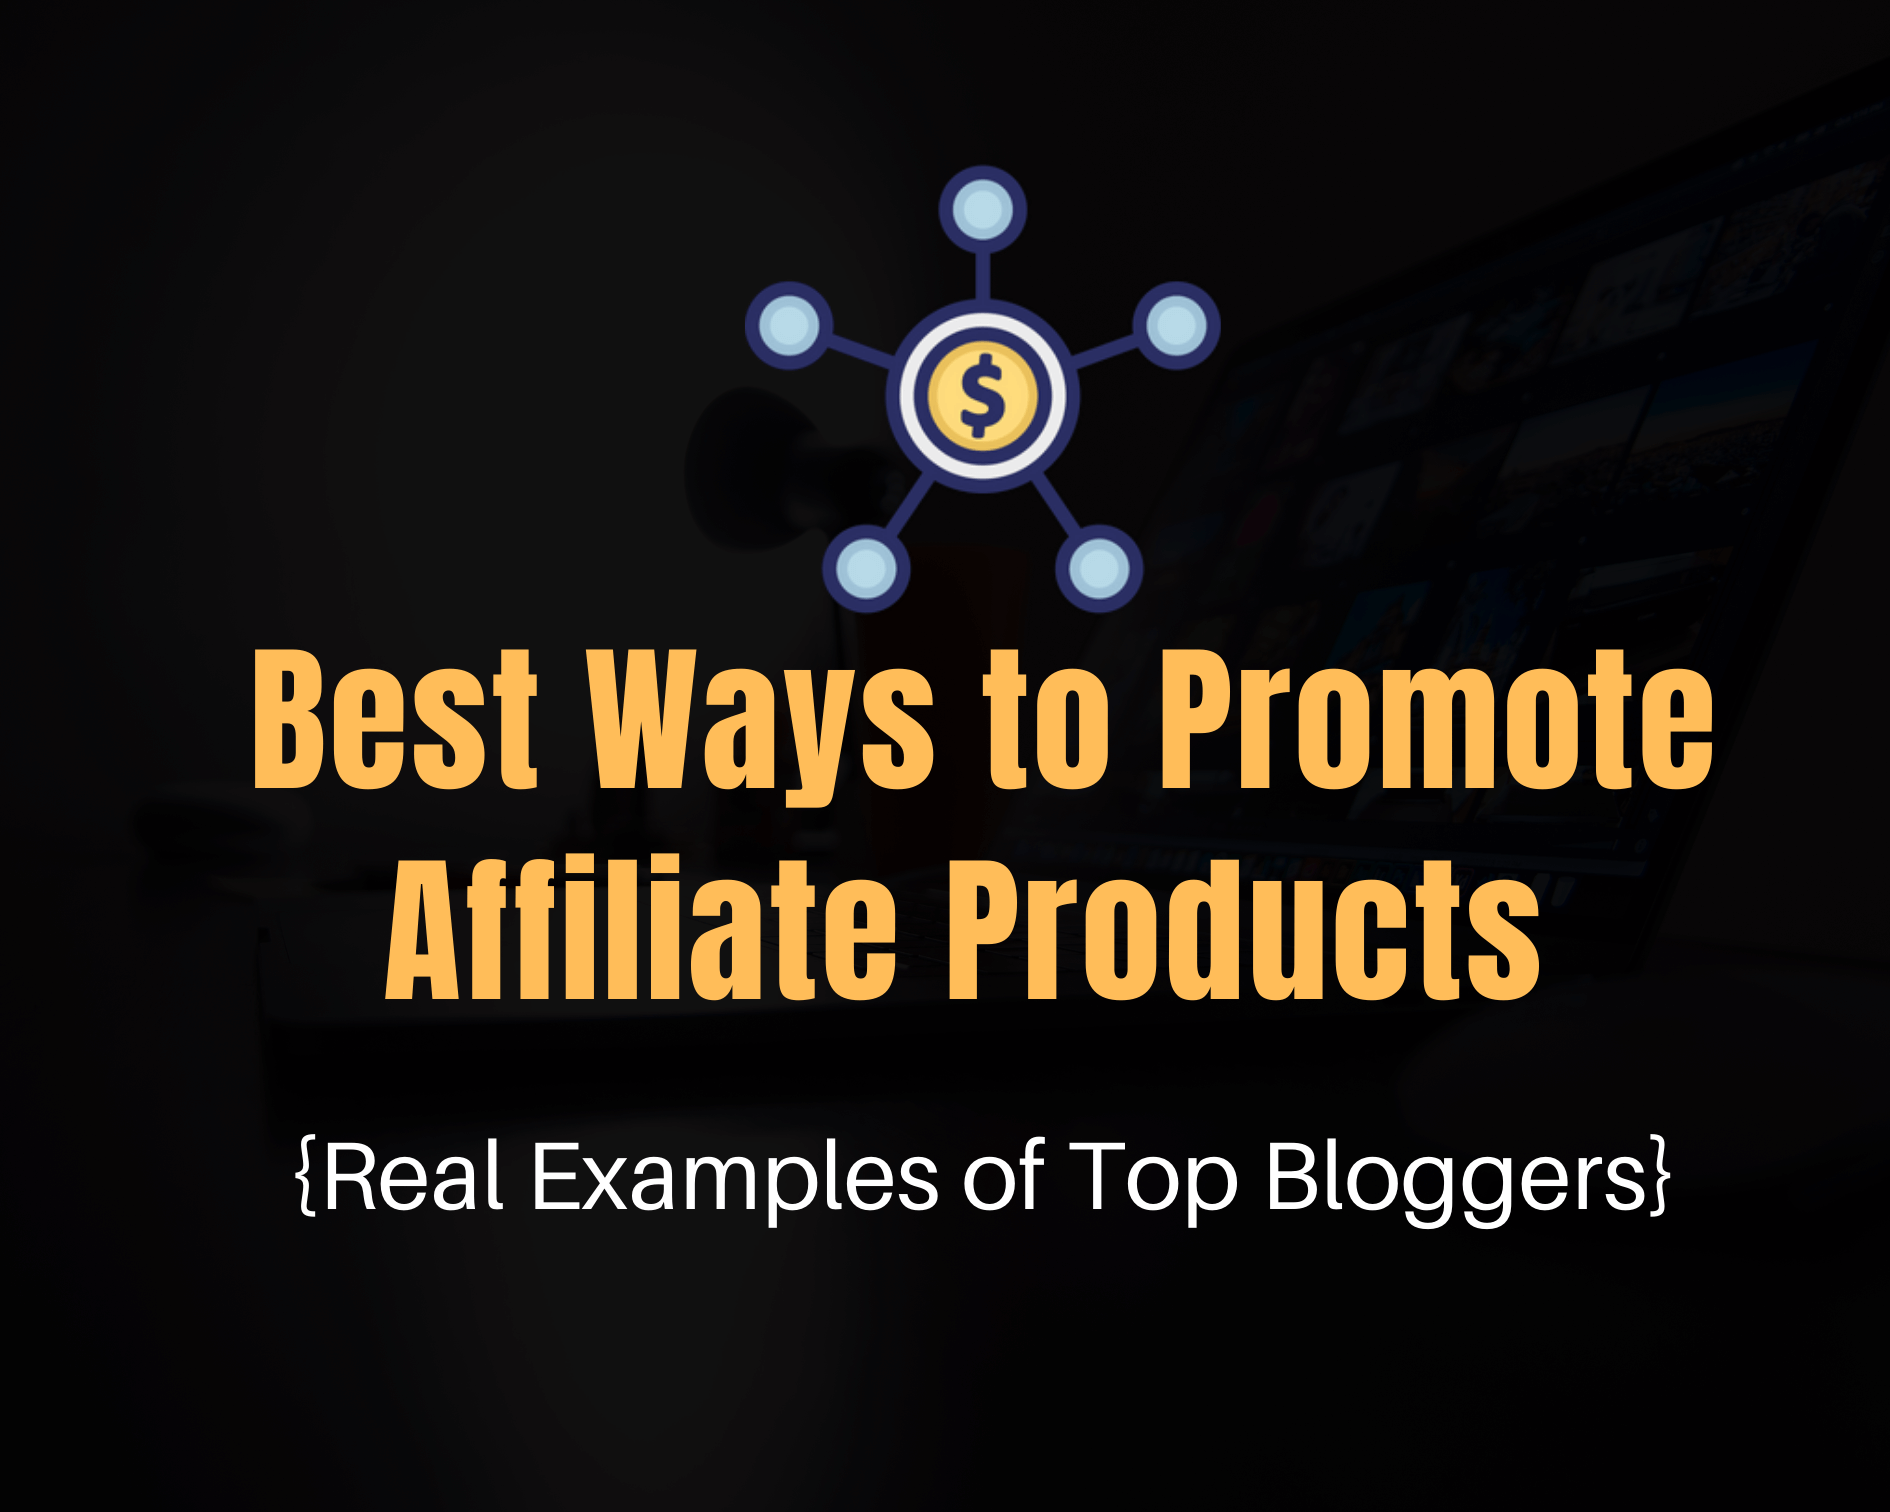 Best Ways to Promote Affiliate Products on Blog